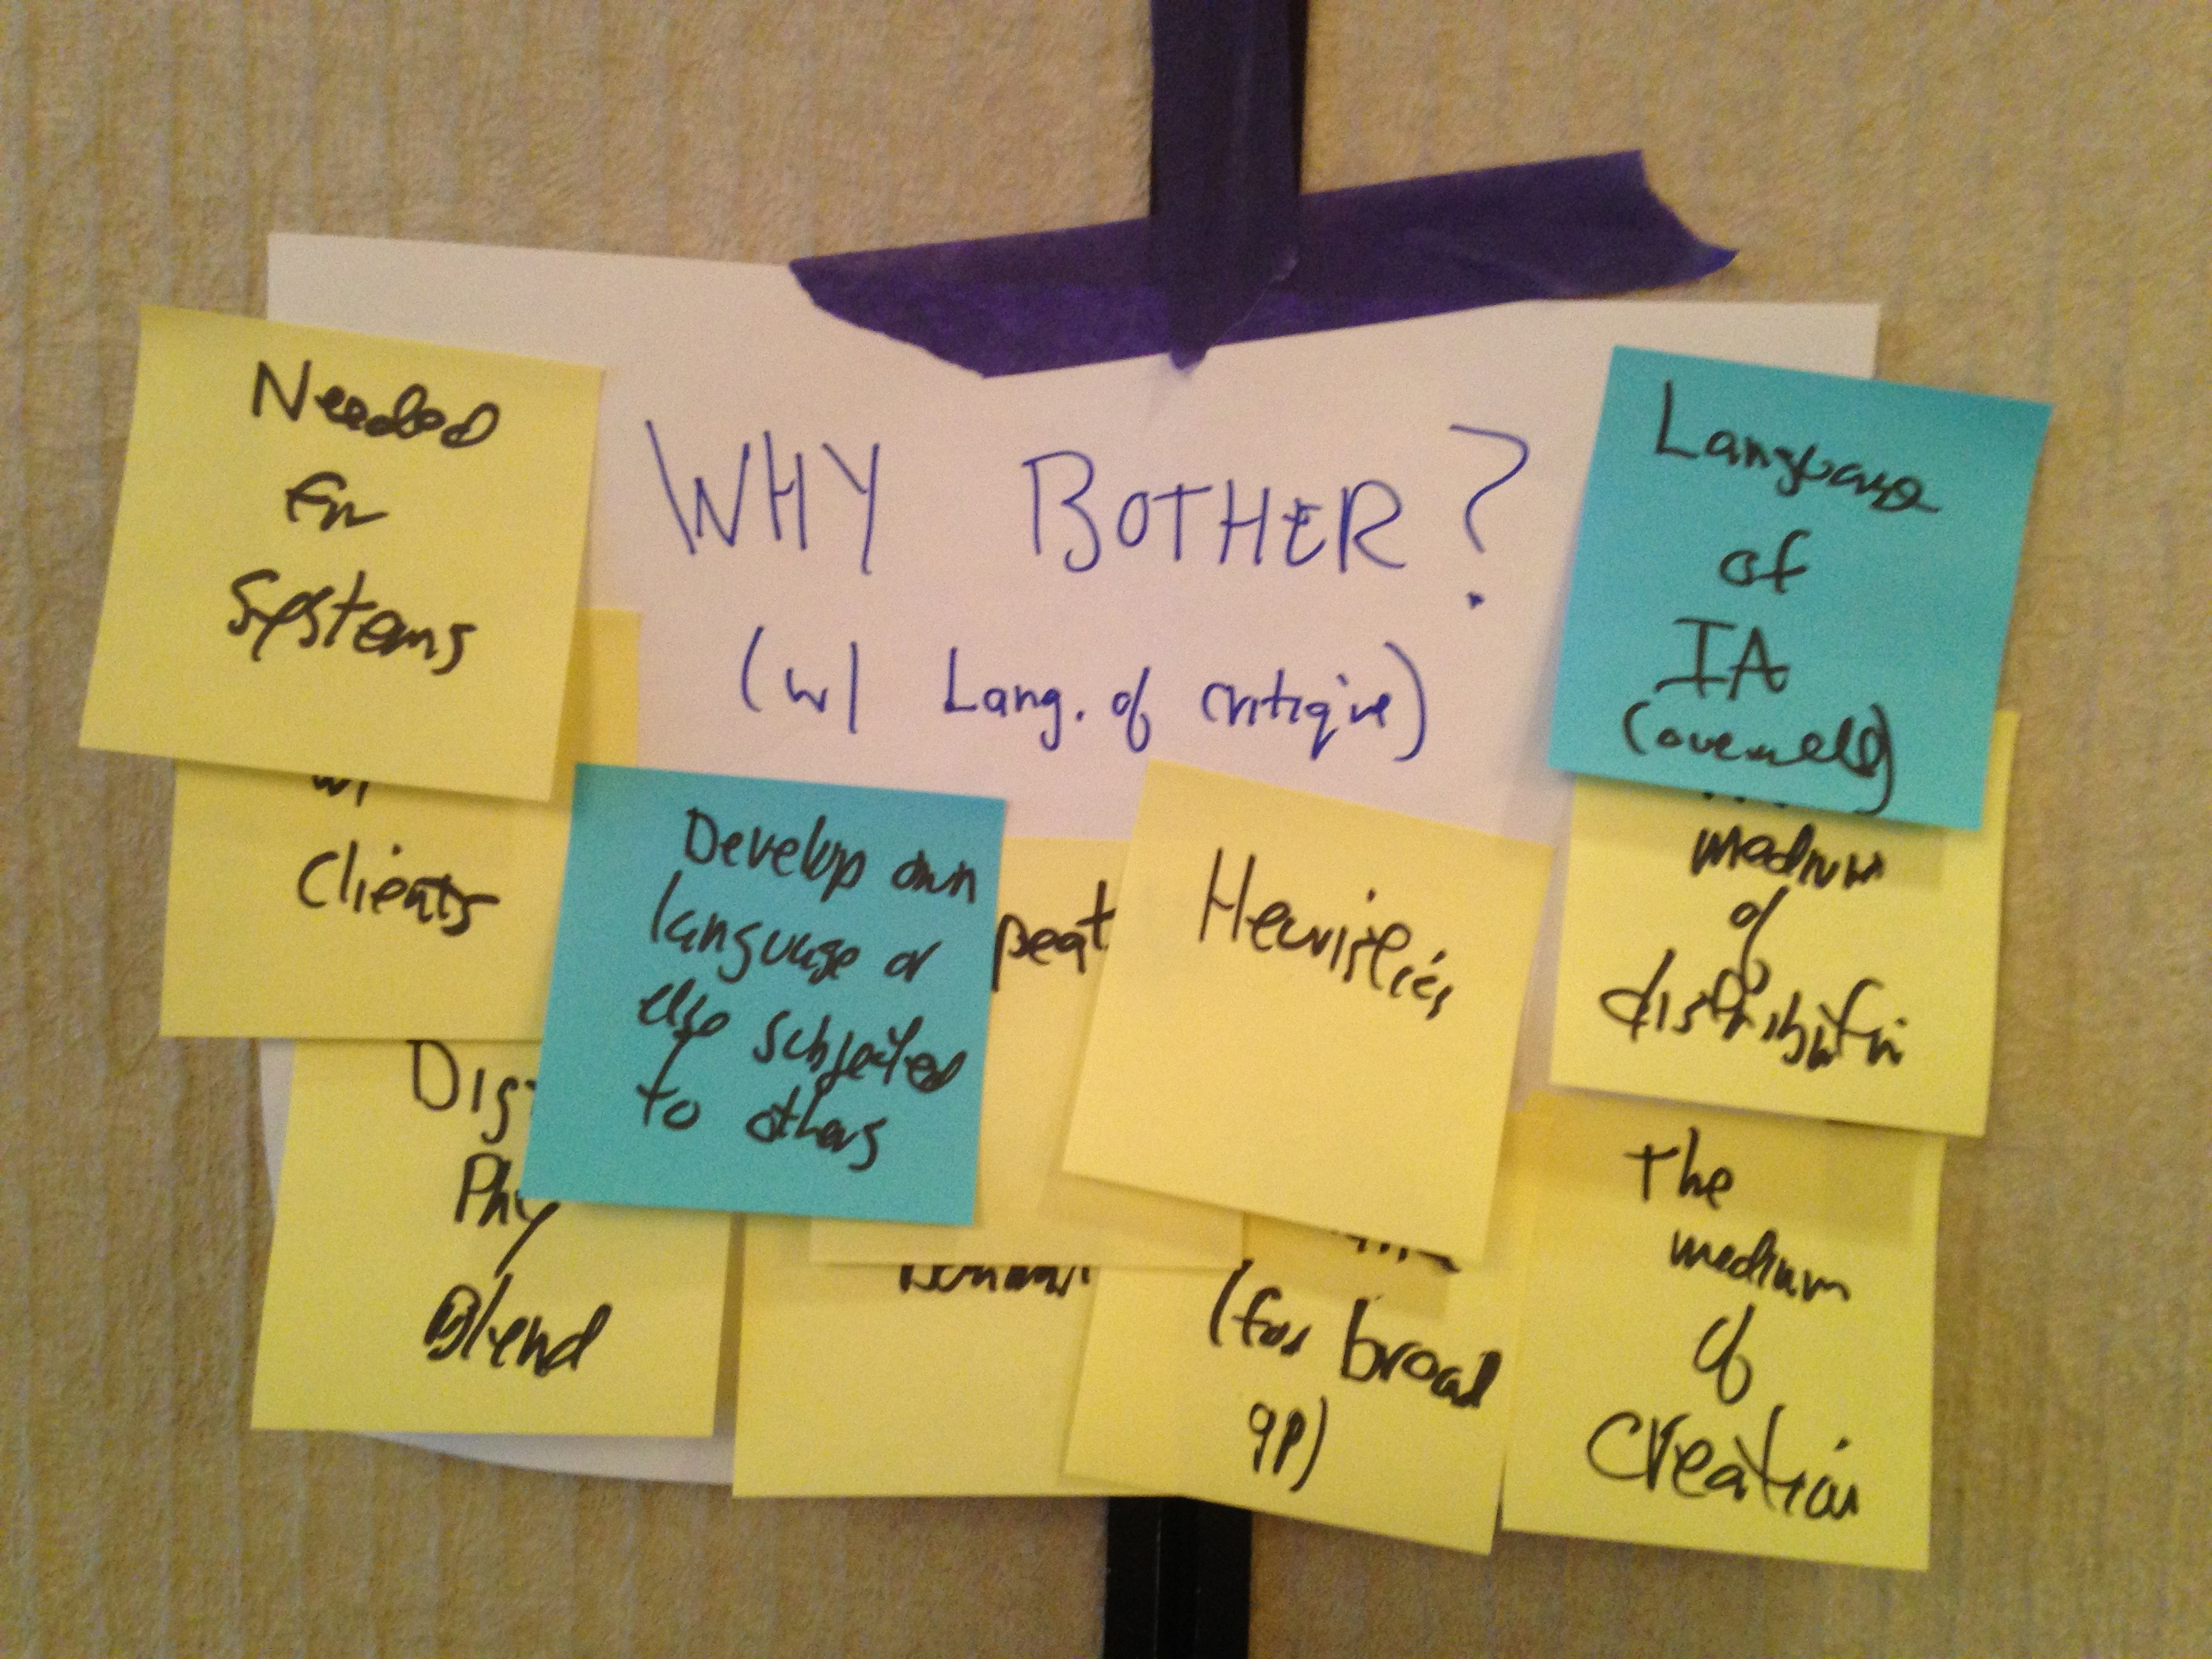 "Photo of Post-it notes answering the question, ""Why bother with a language of critique?"""